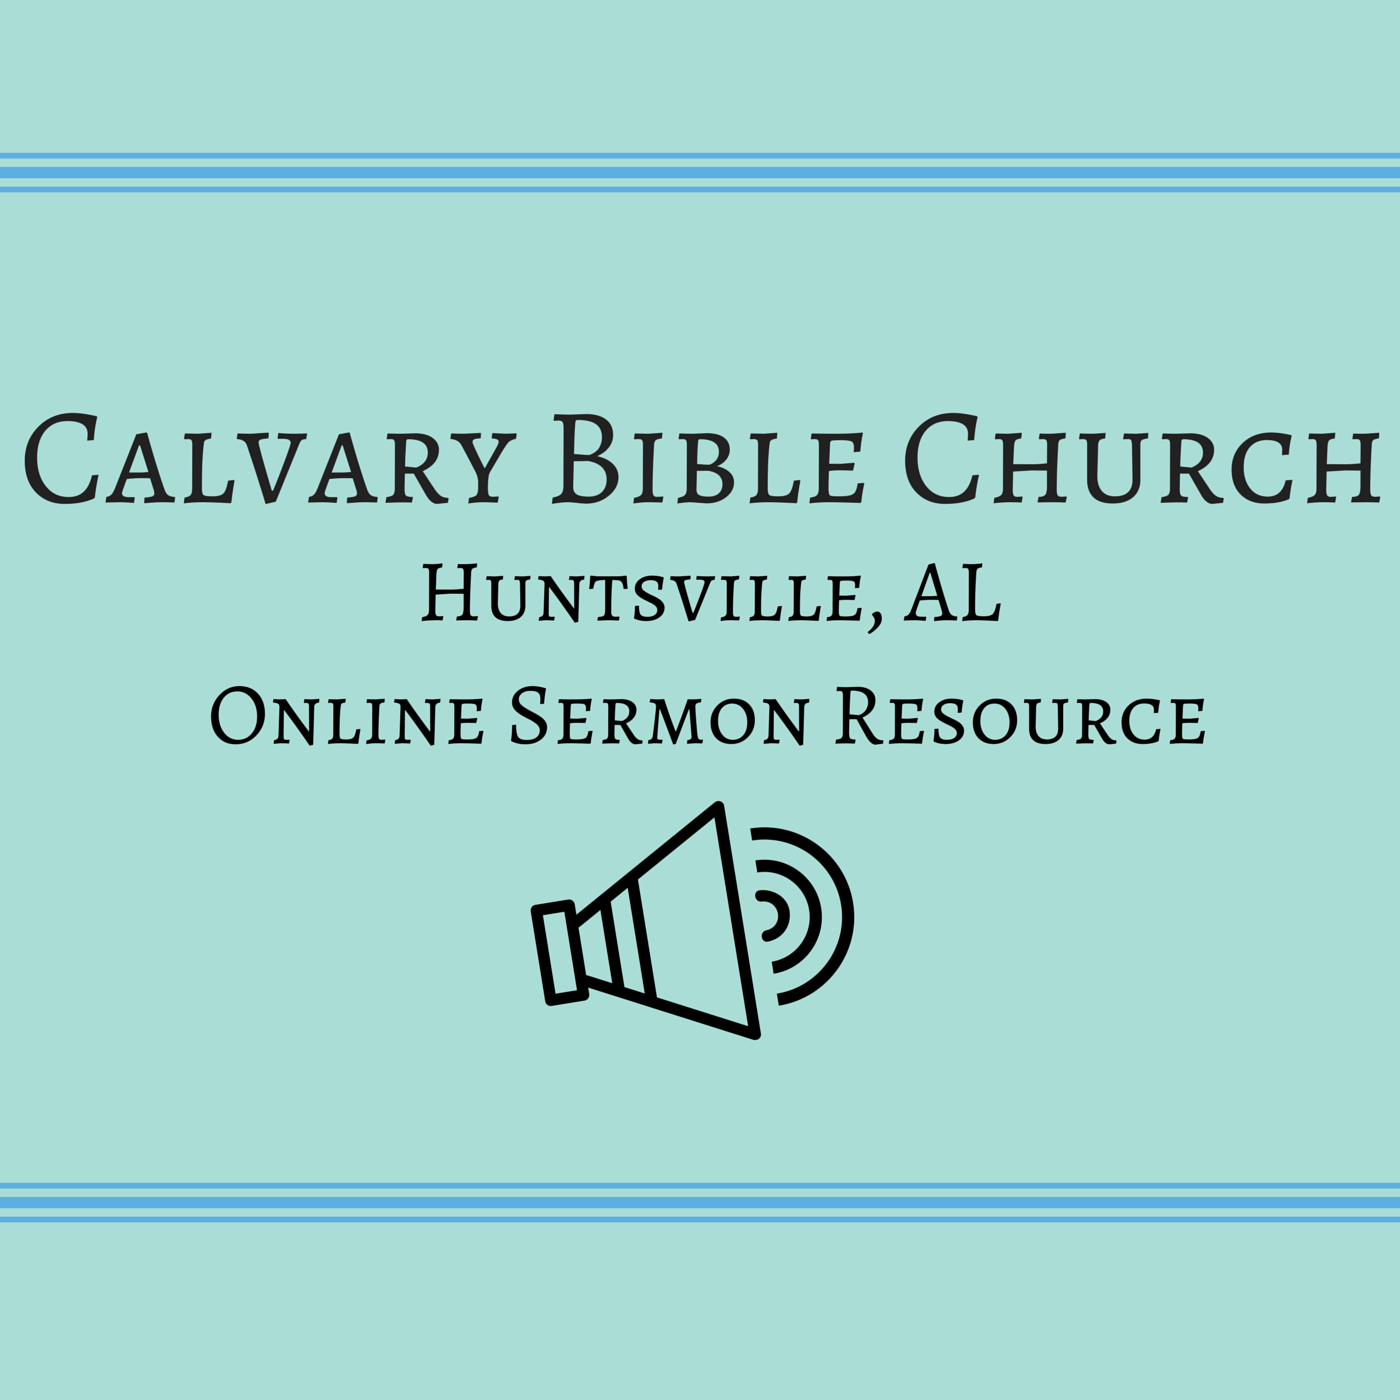 Calvary Bible Huntsville, AL Online Resource